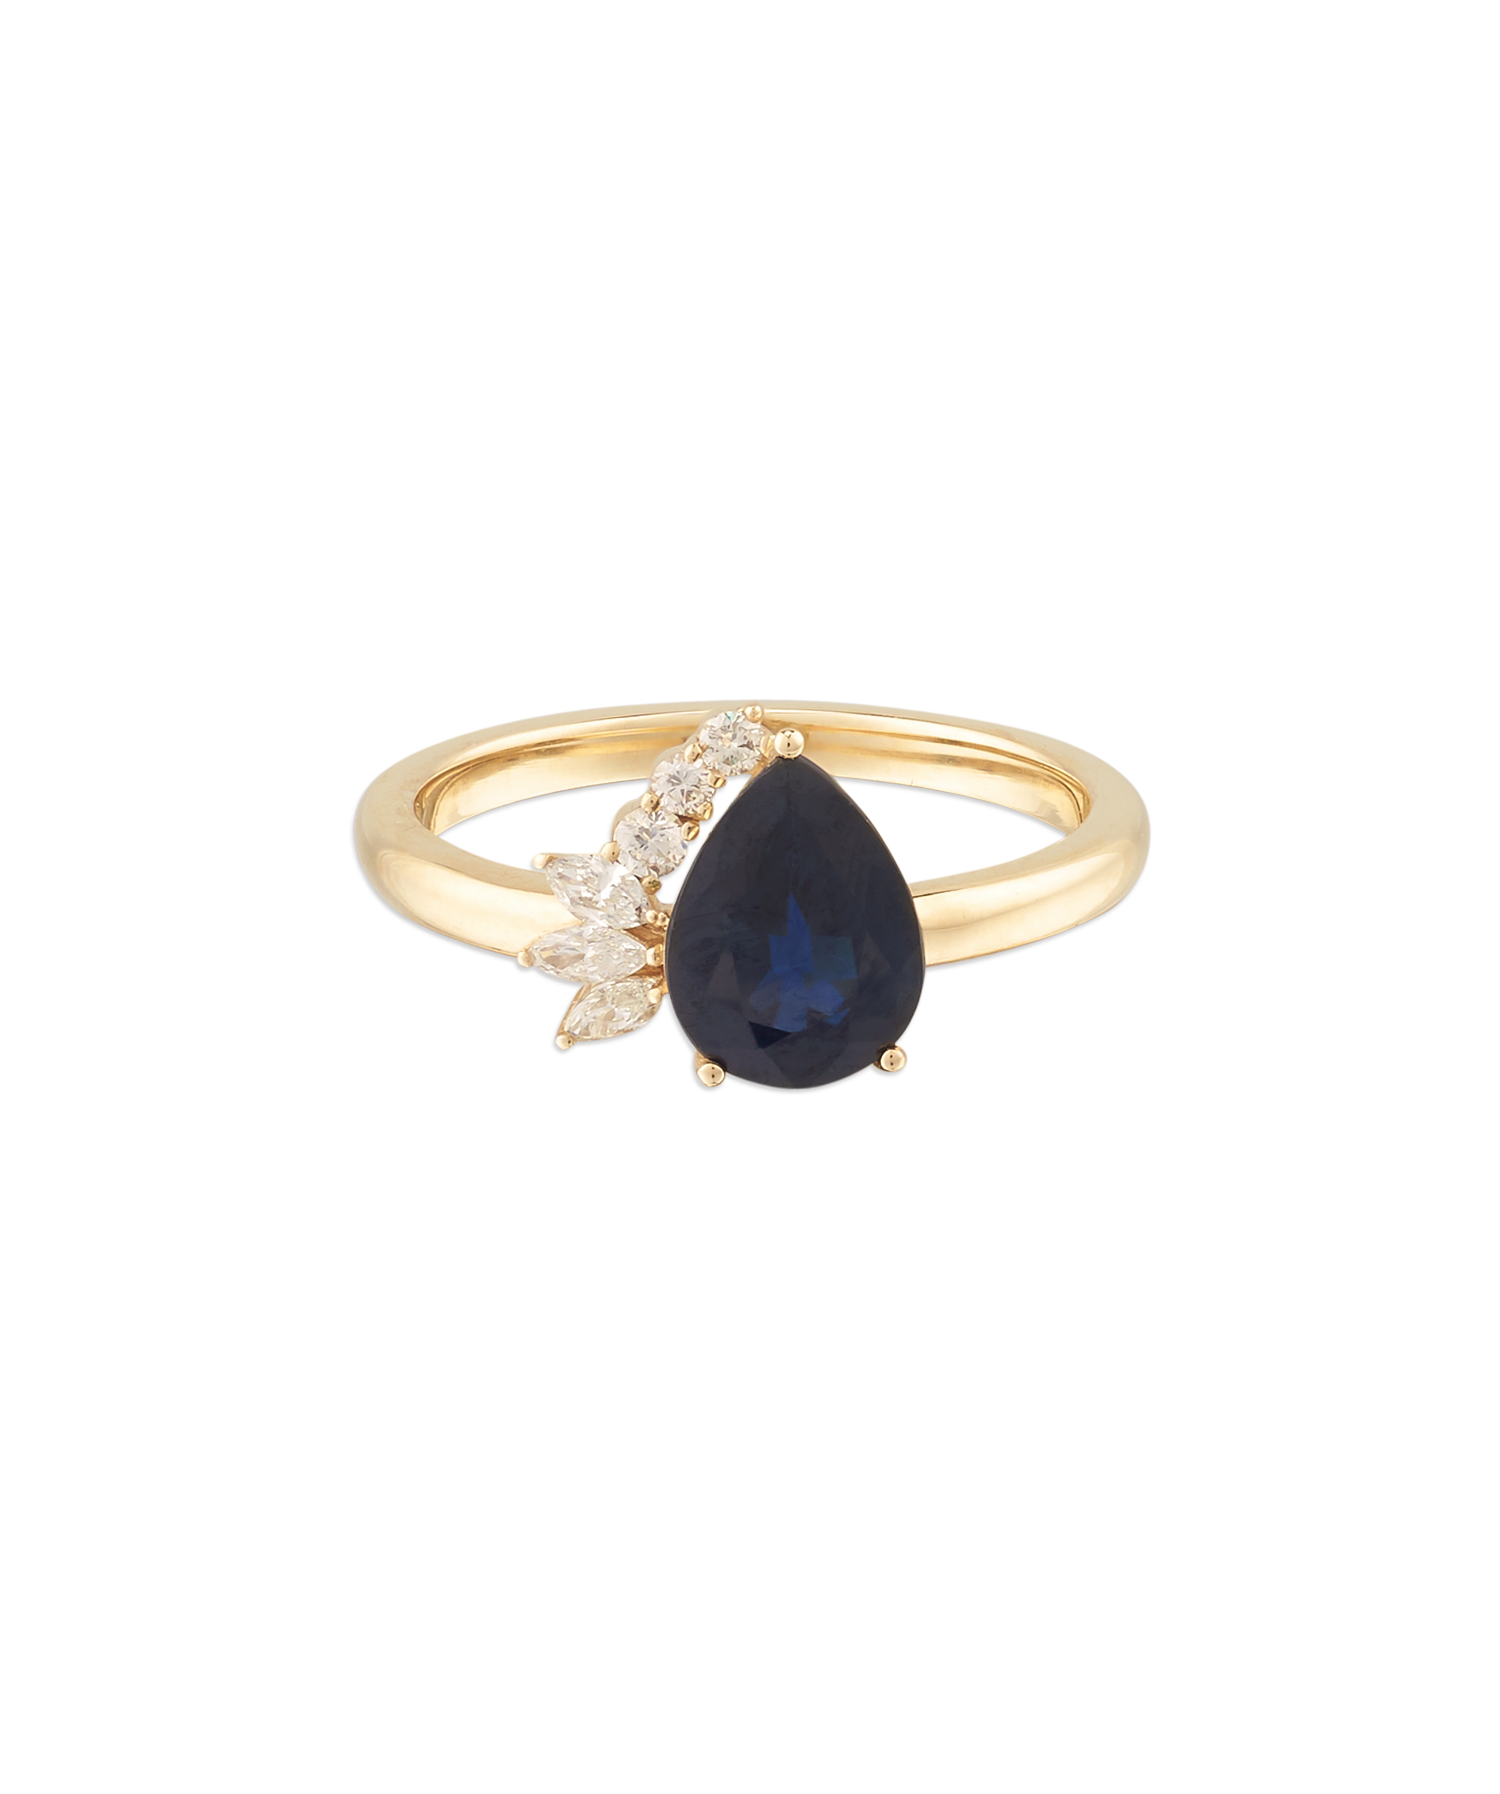 mejuri-pear-cut-sapphire-engagnement-ring